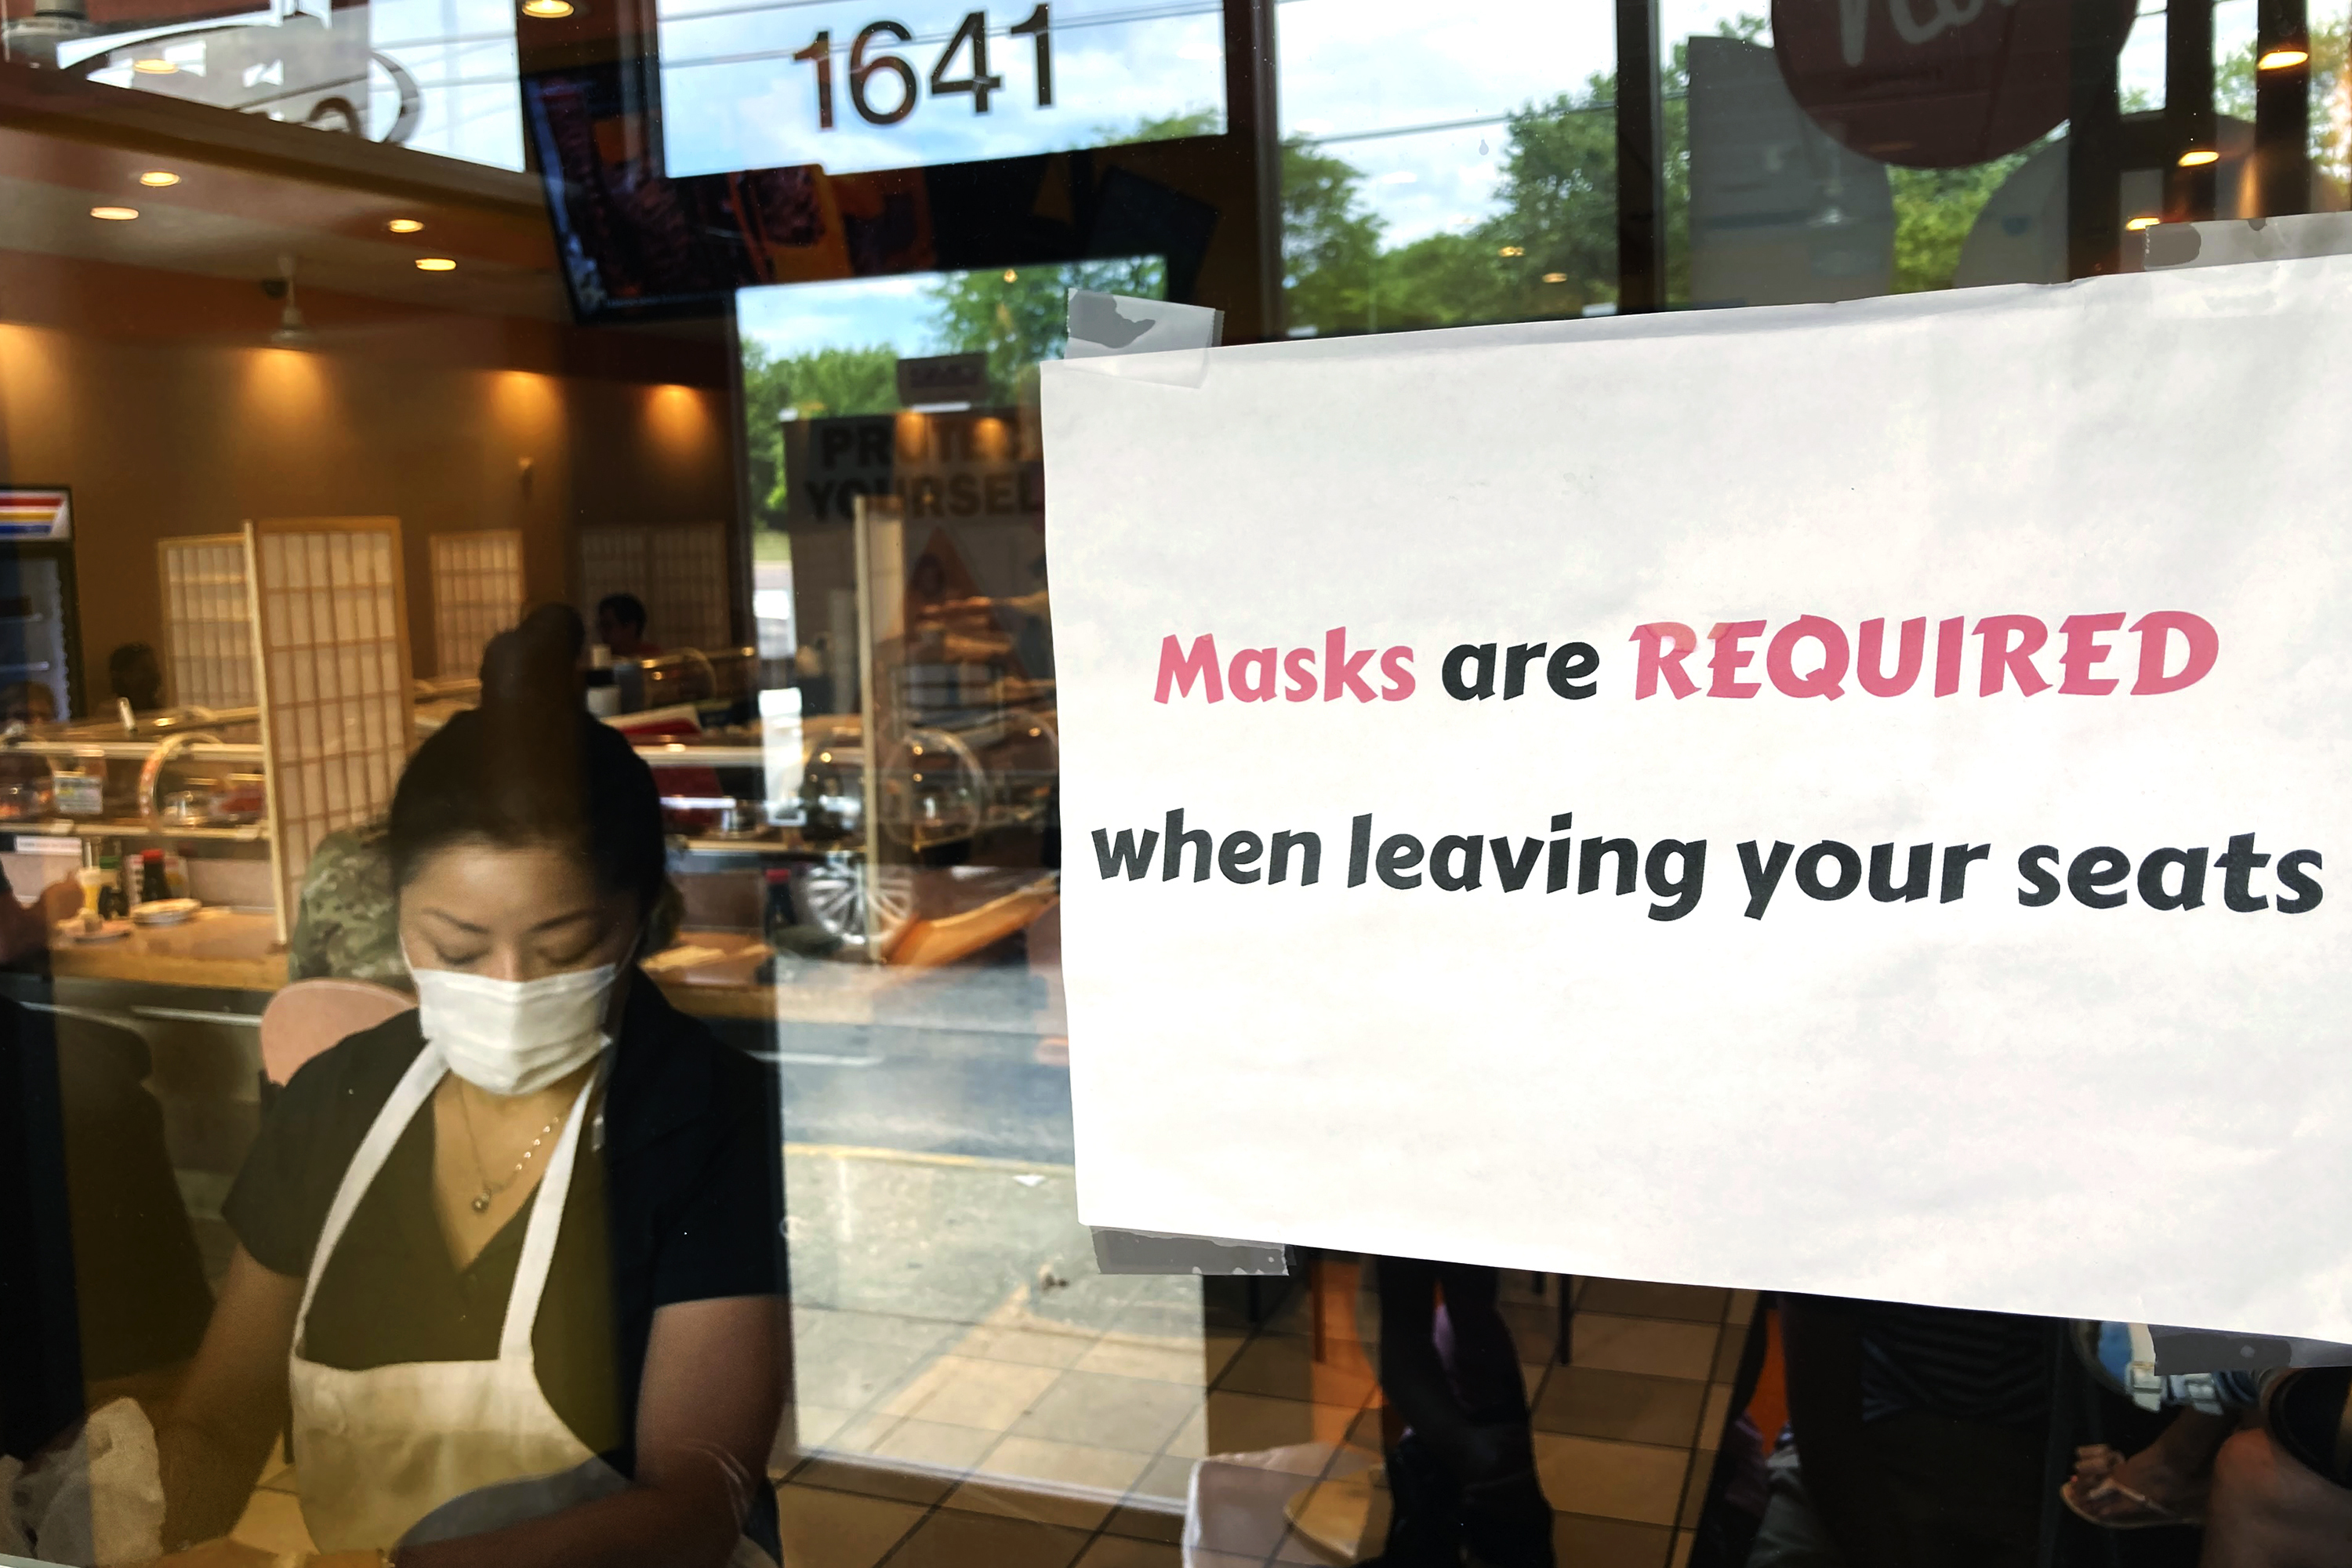 A sign at a restaurant in Rolling Meadows tells patrons marks are required.